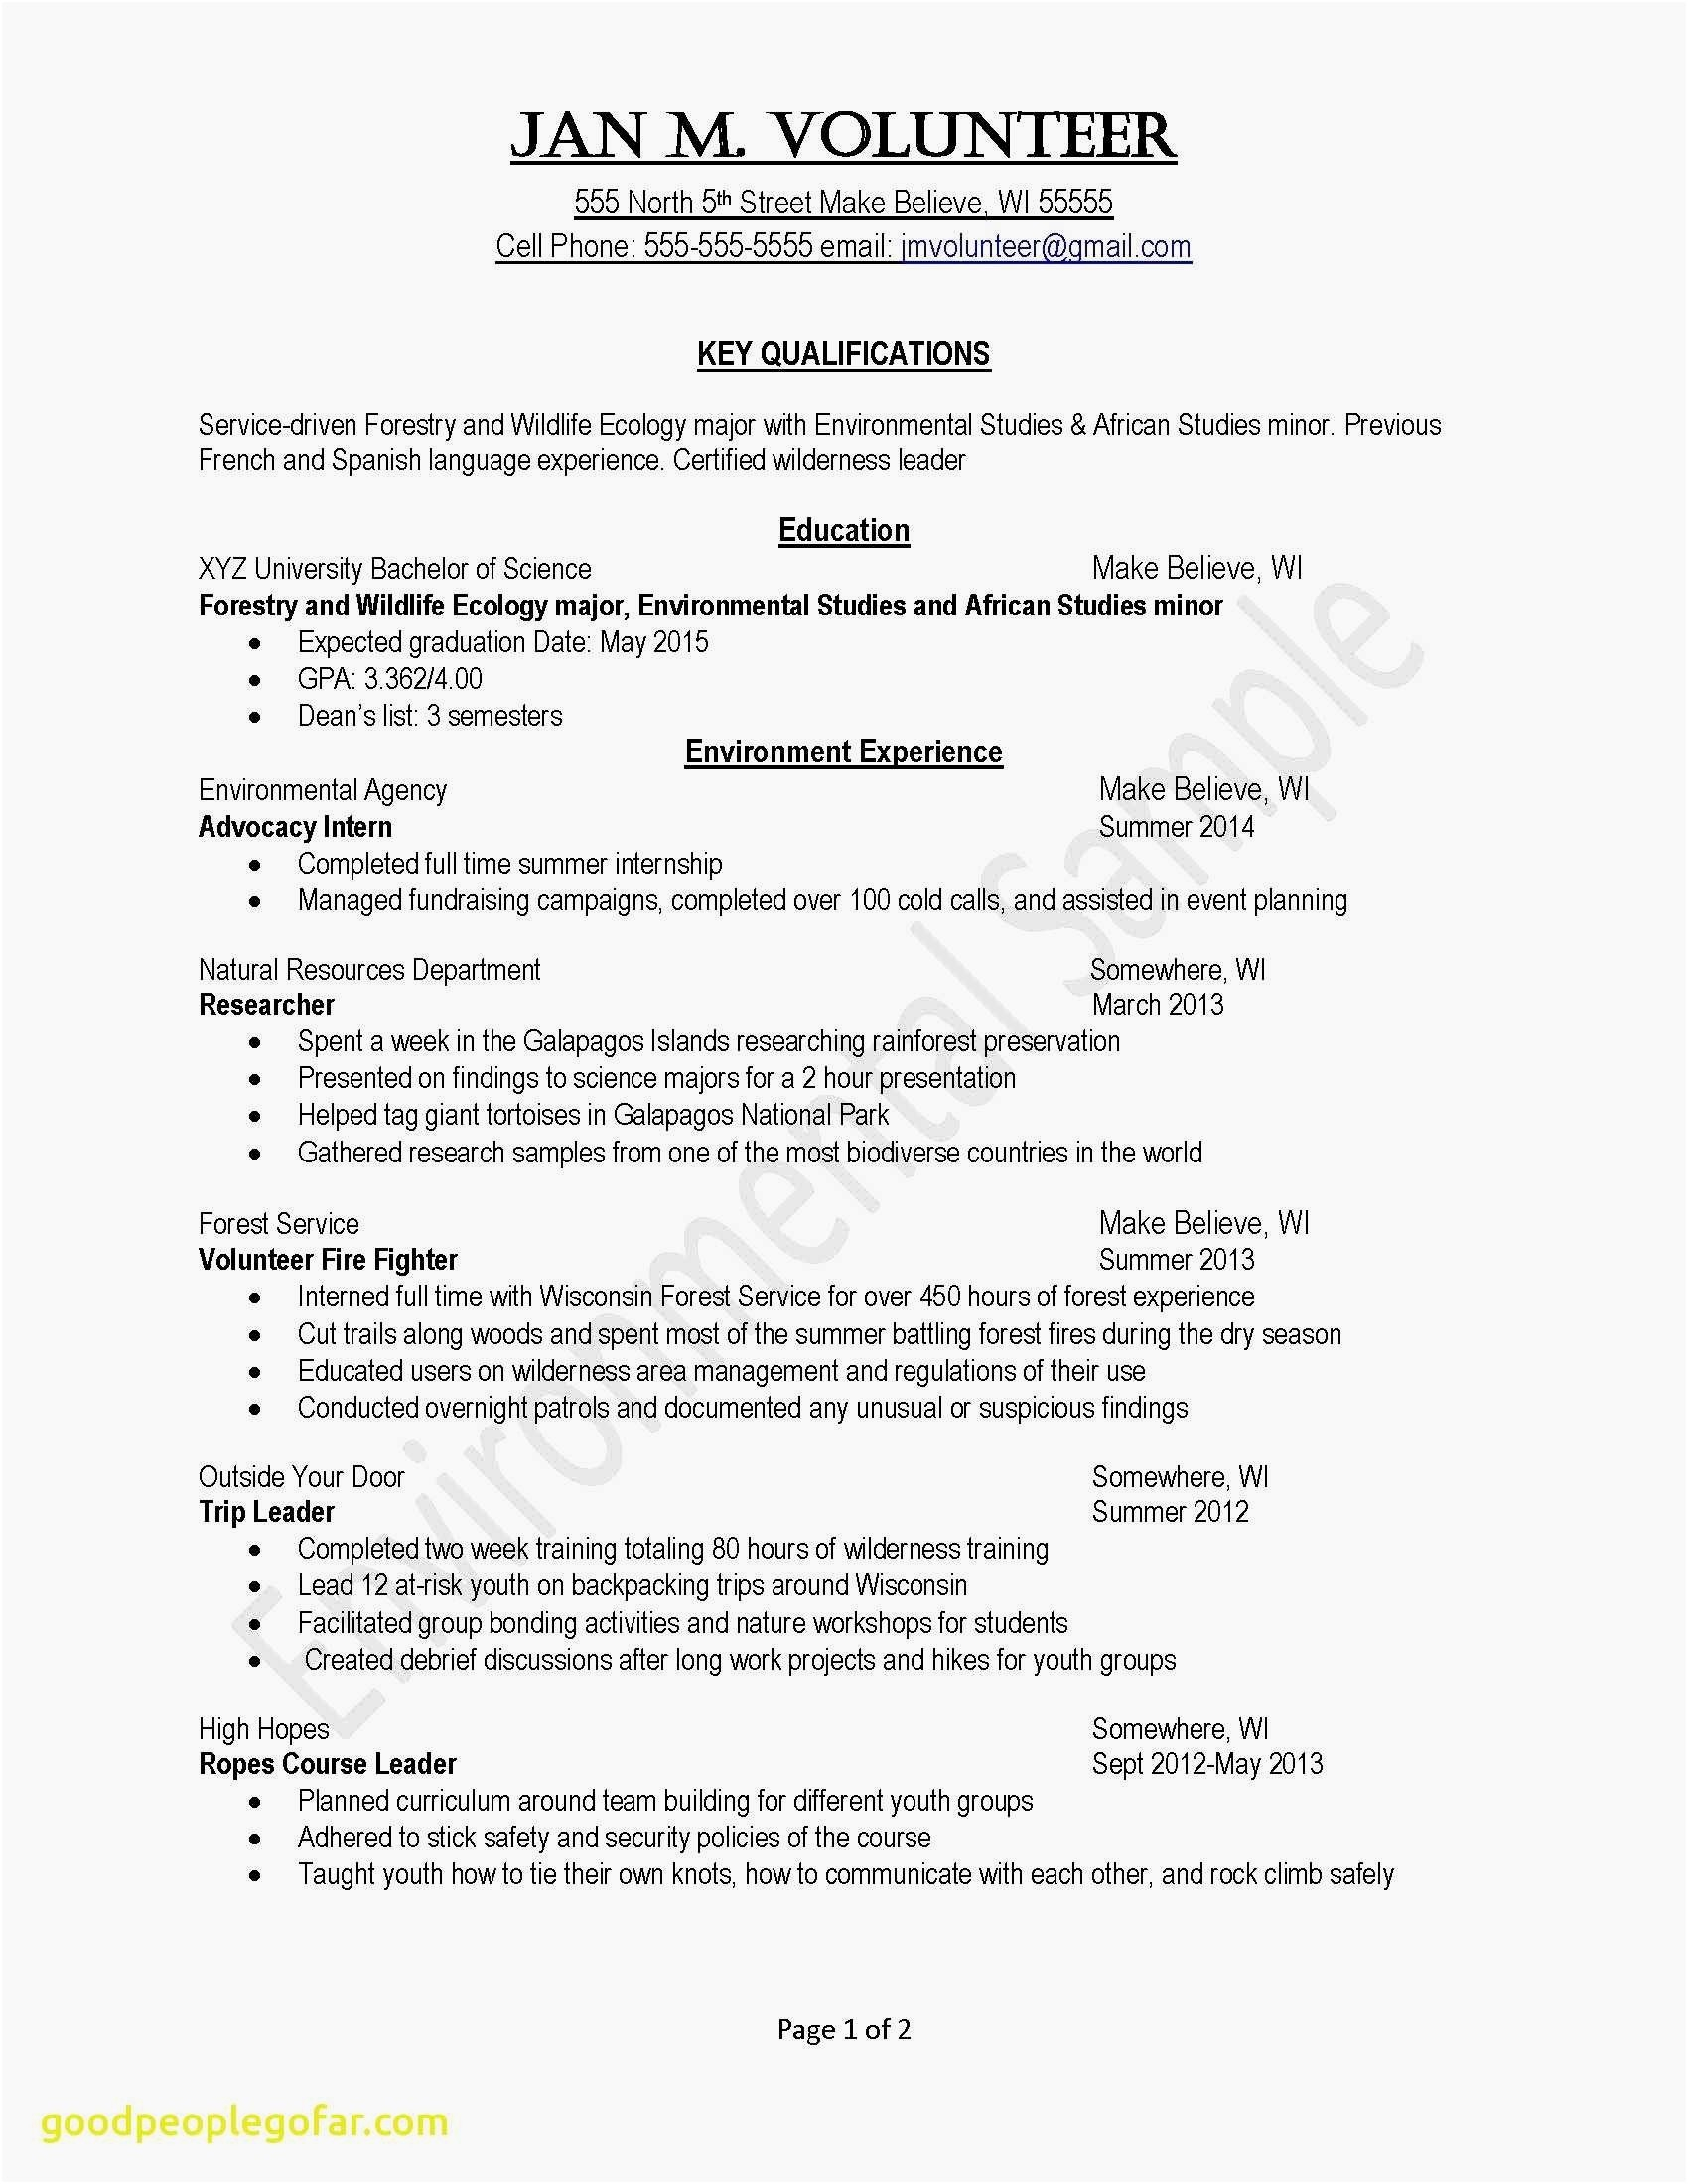 Resume Summary Section - Resume Personal Statement Fresh Resume Personal Statements Examples